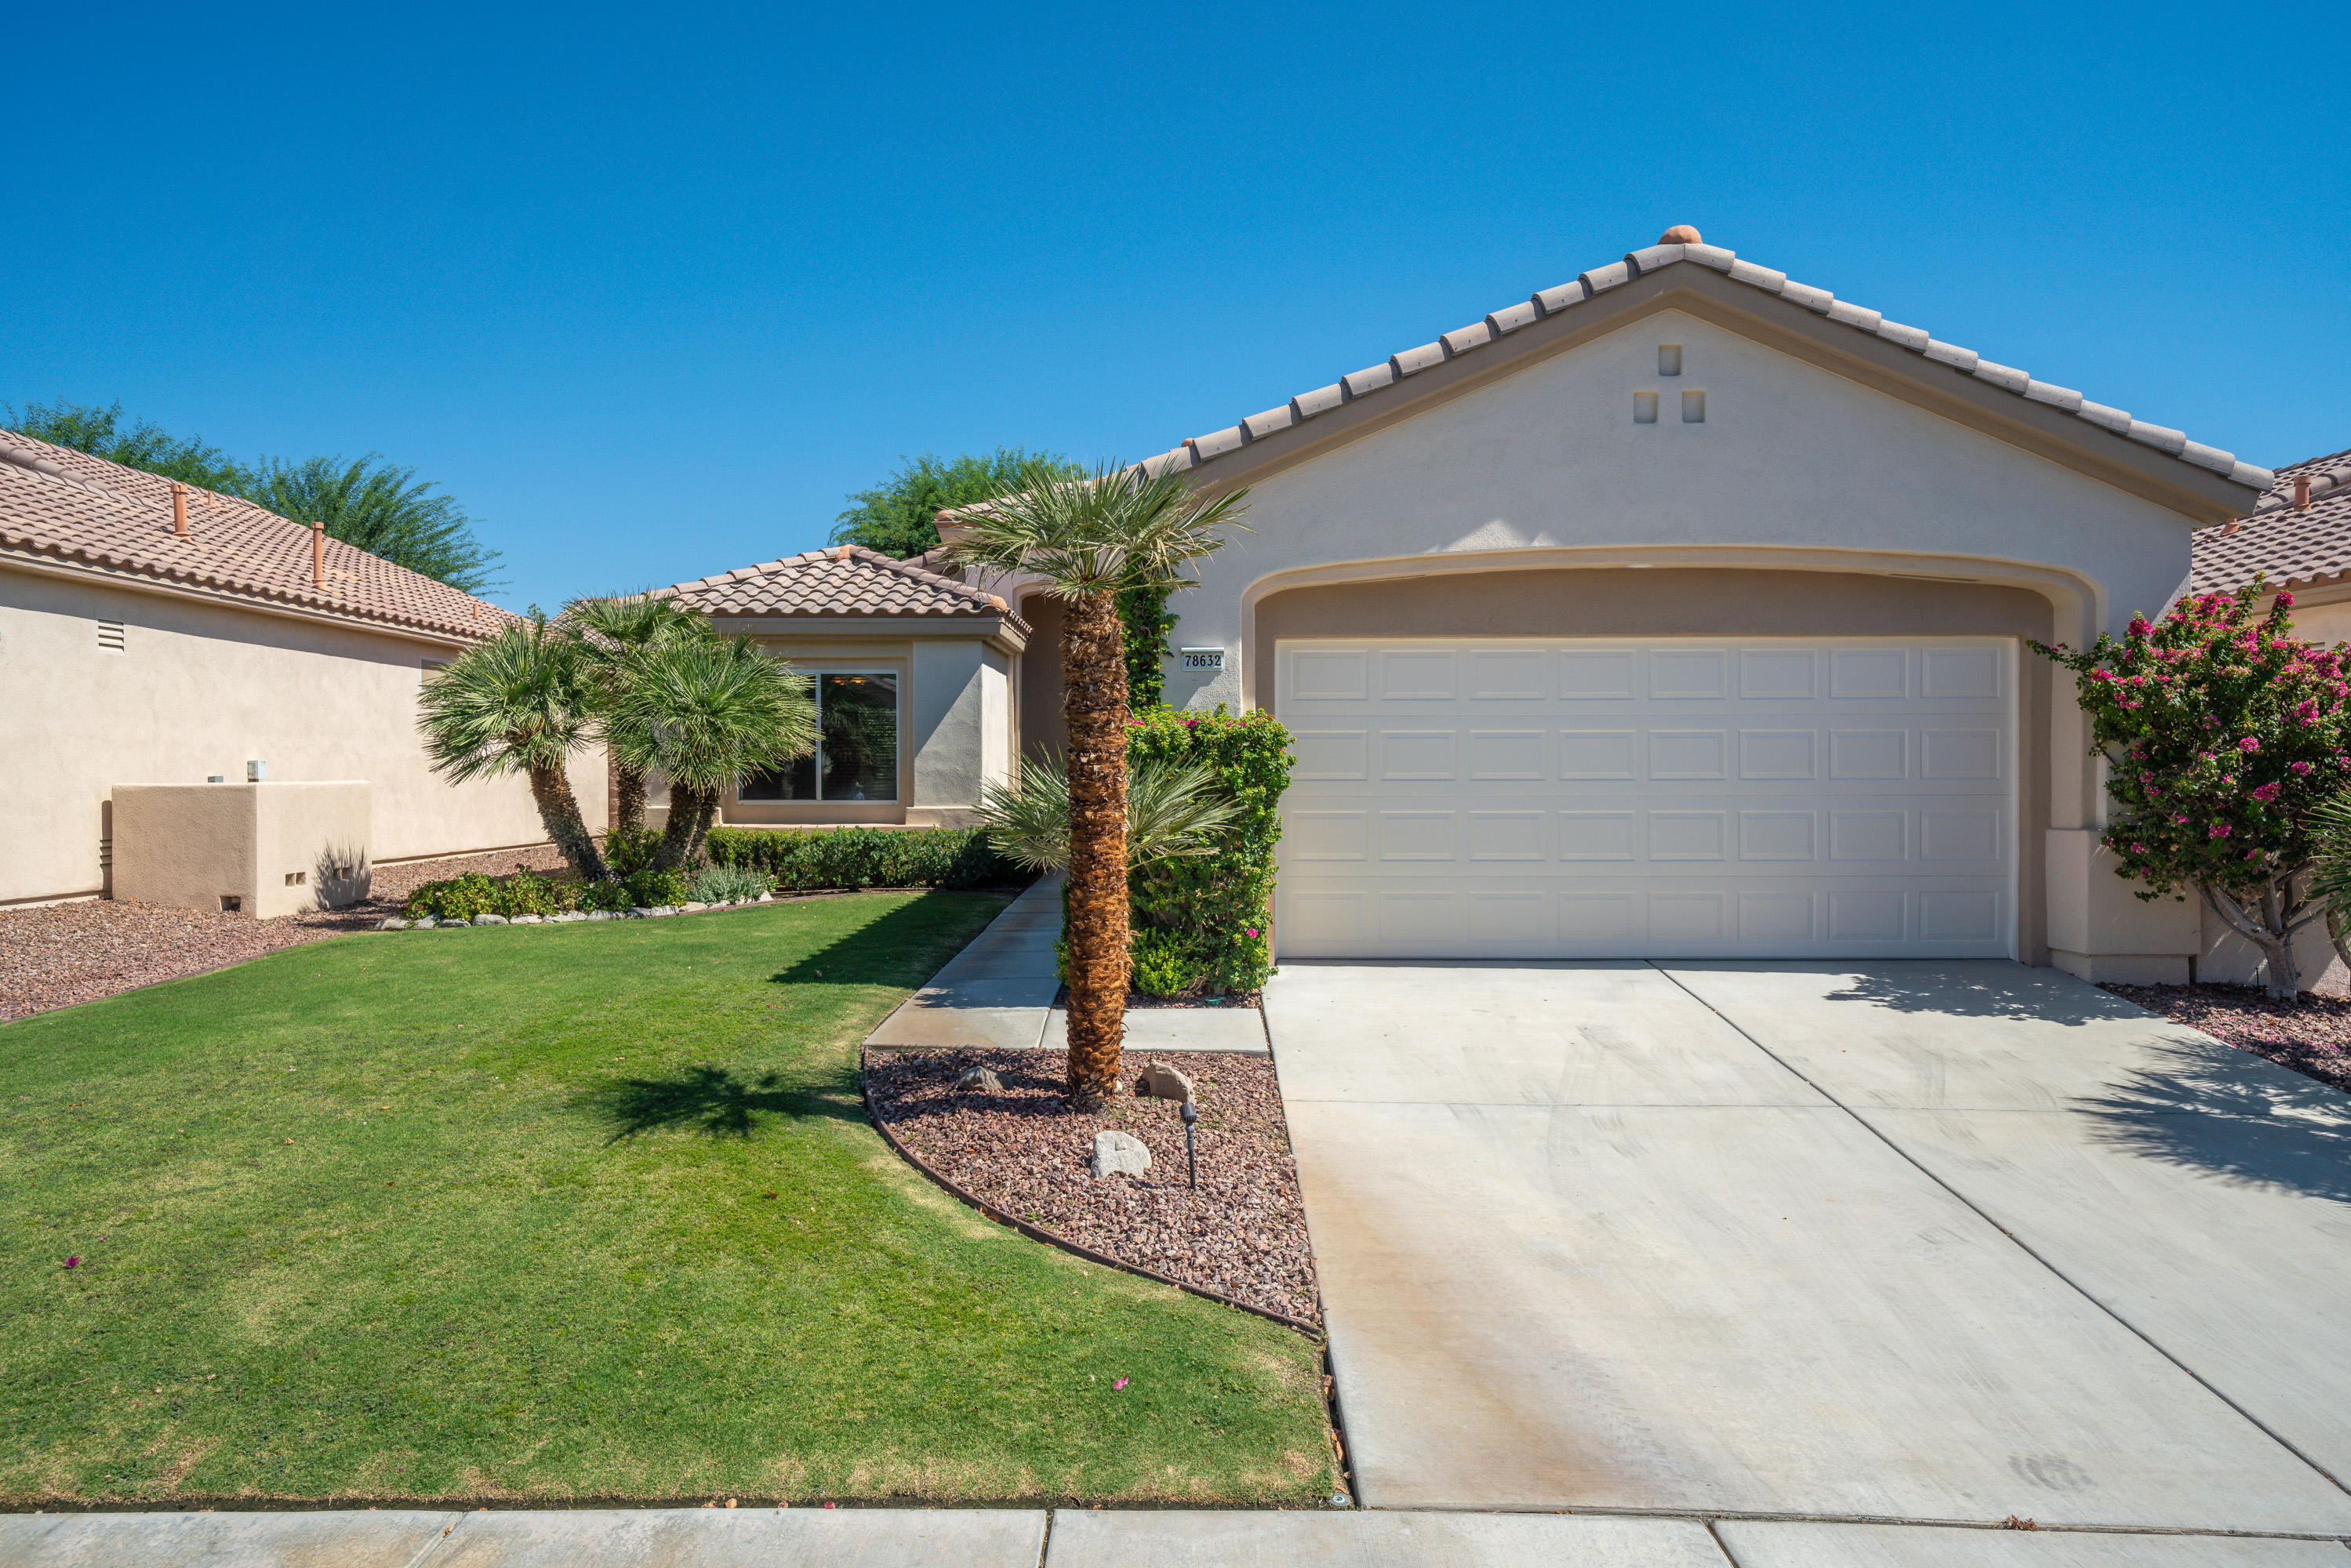 Photo of 78632 Iron Bark Drive, Palm Desert, CA 92211